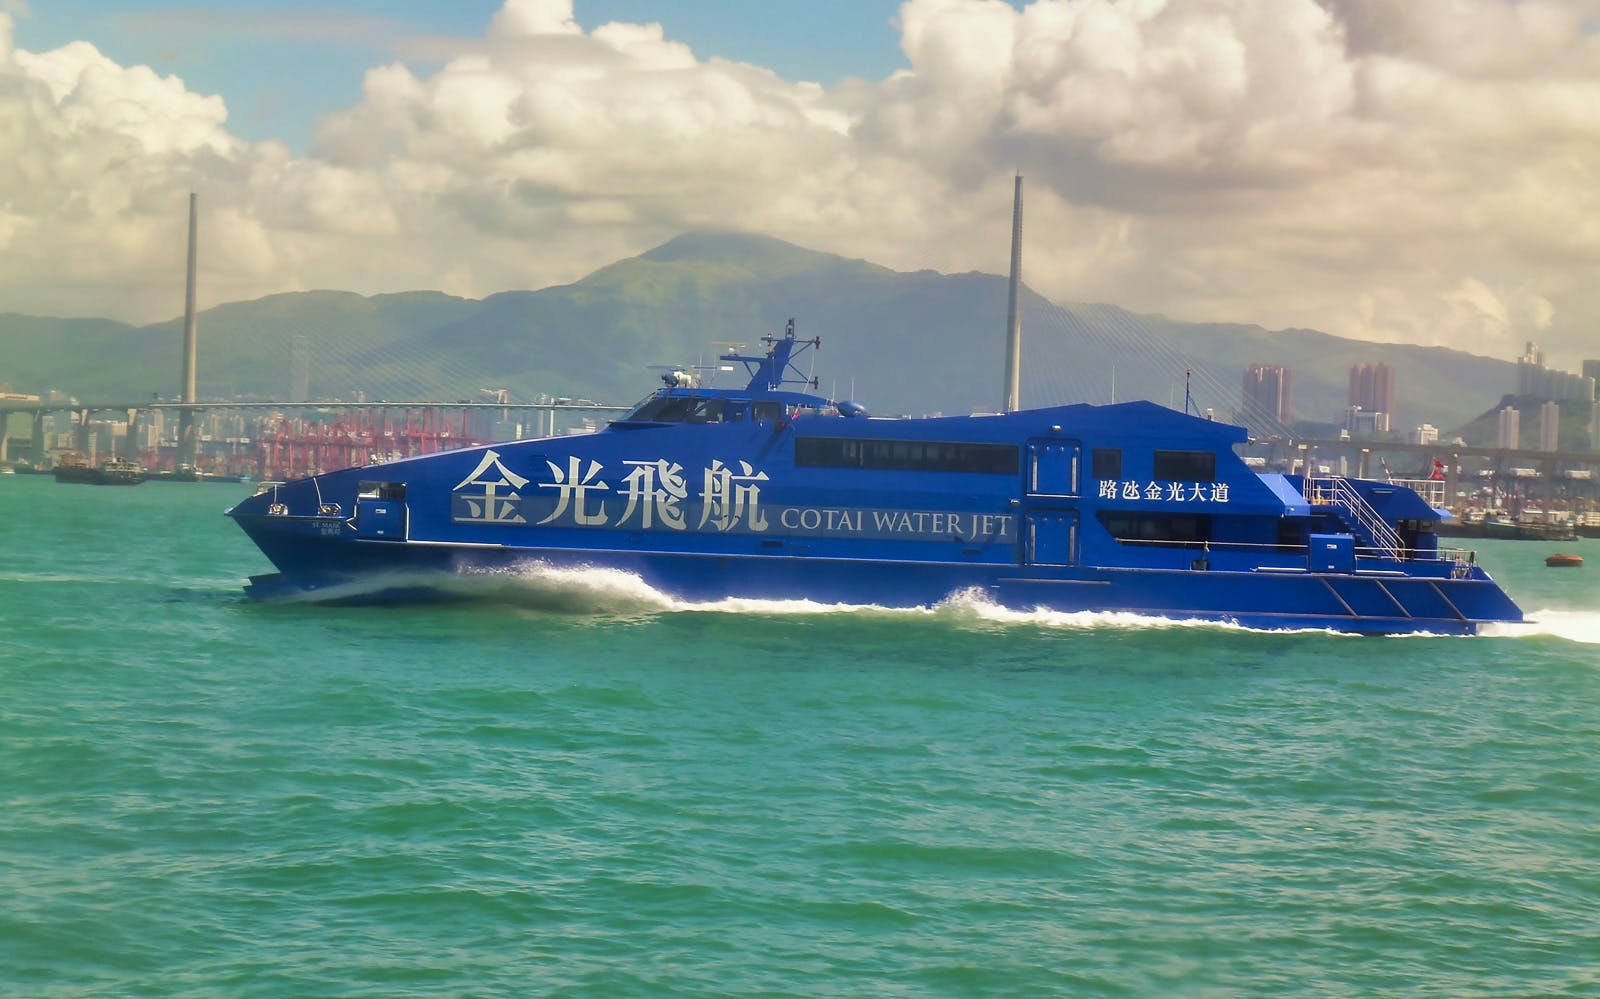 cotai ferry transfers between hong kong & macau (taipa)-2